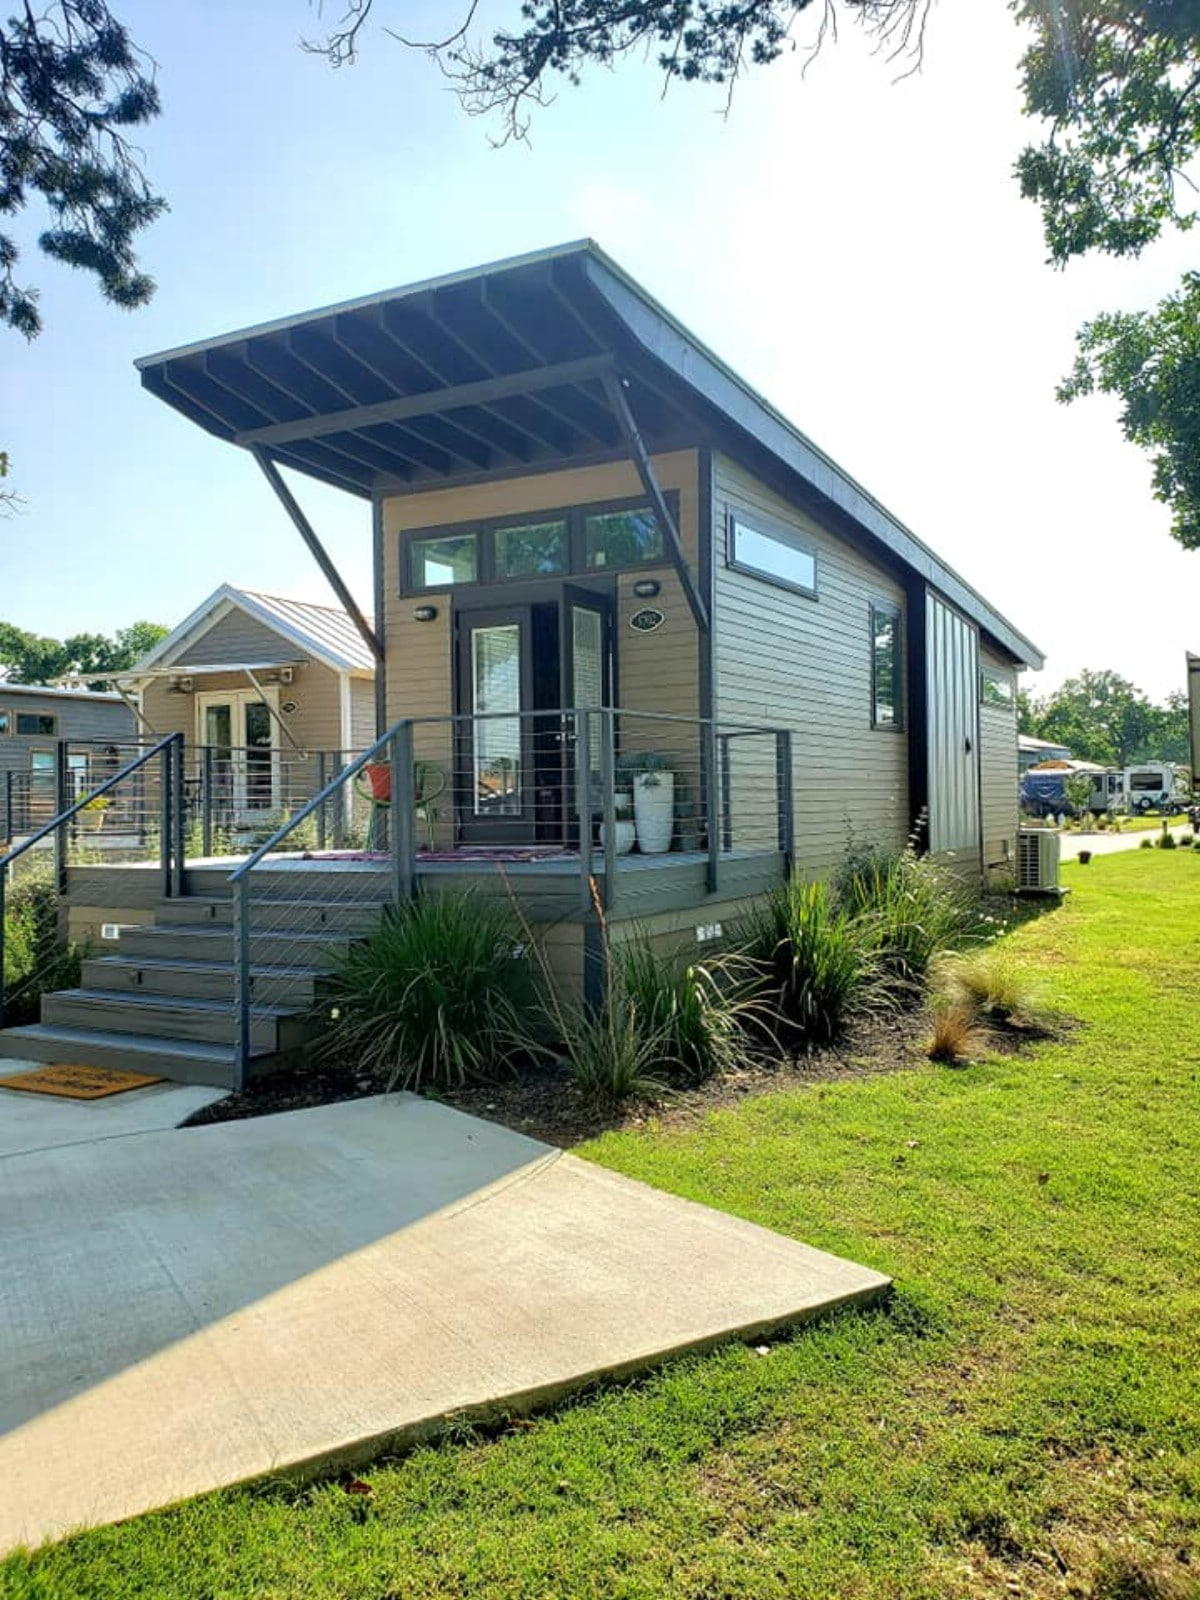 Front of tiny home with green grass and concrete walkway